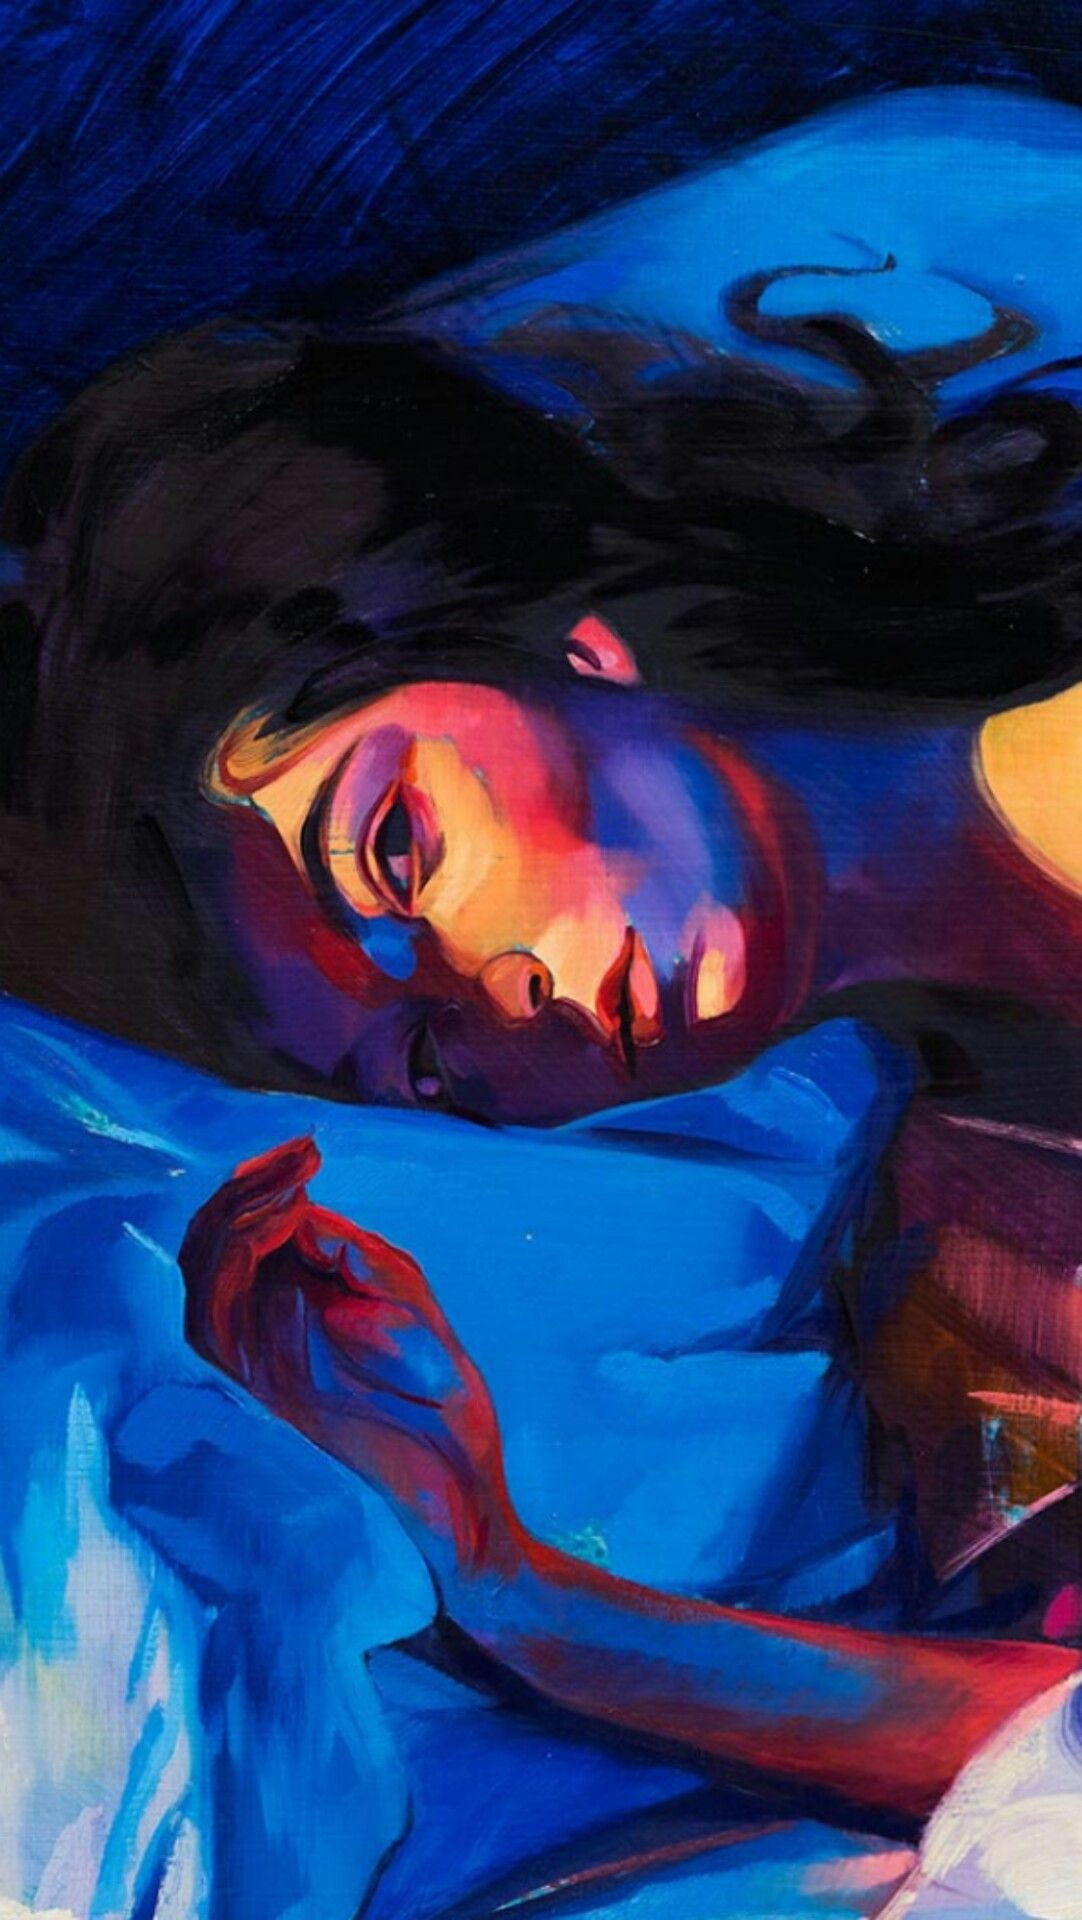 Pin by Satan on Queen Lorde | Pinterest | Lorde, Pretty art and ...